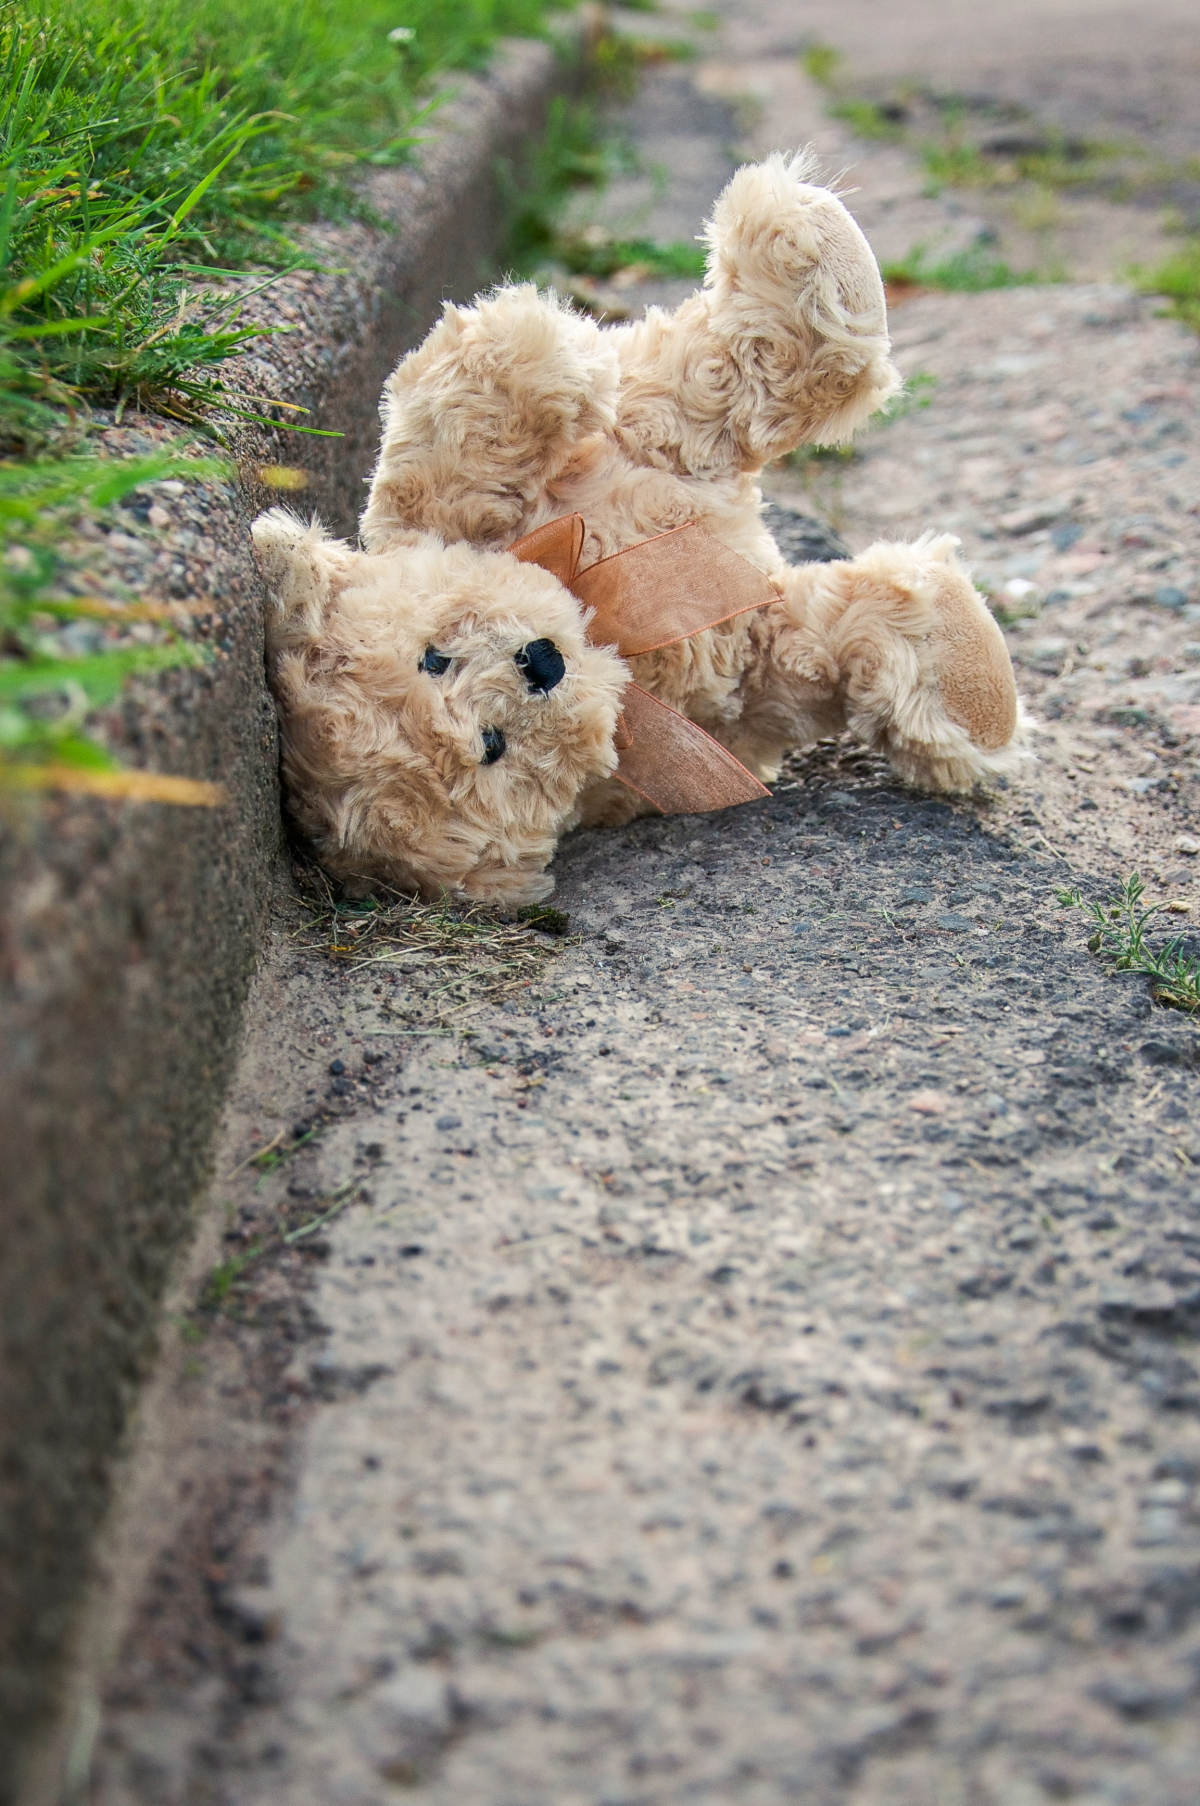 Snapshot: Discarded Toy